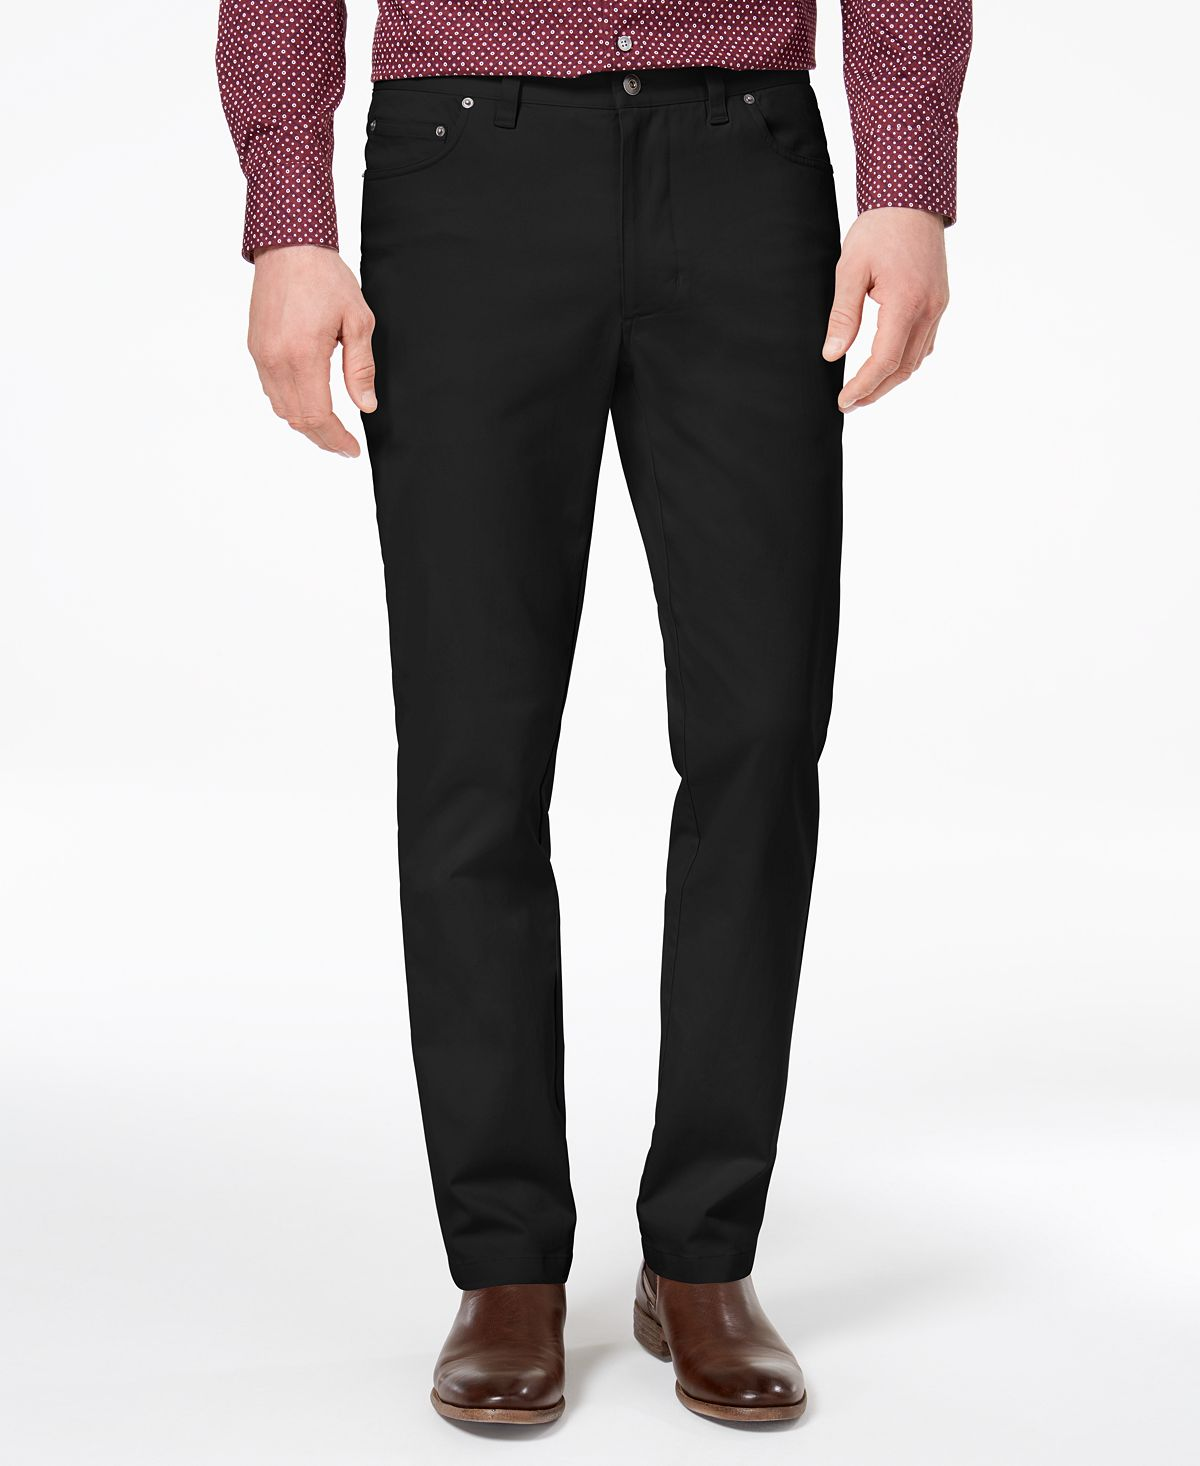 Tasso Elba Straight-fit Stretch Pants Black